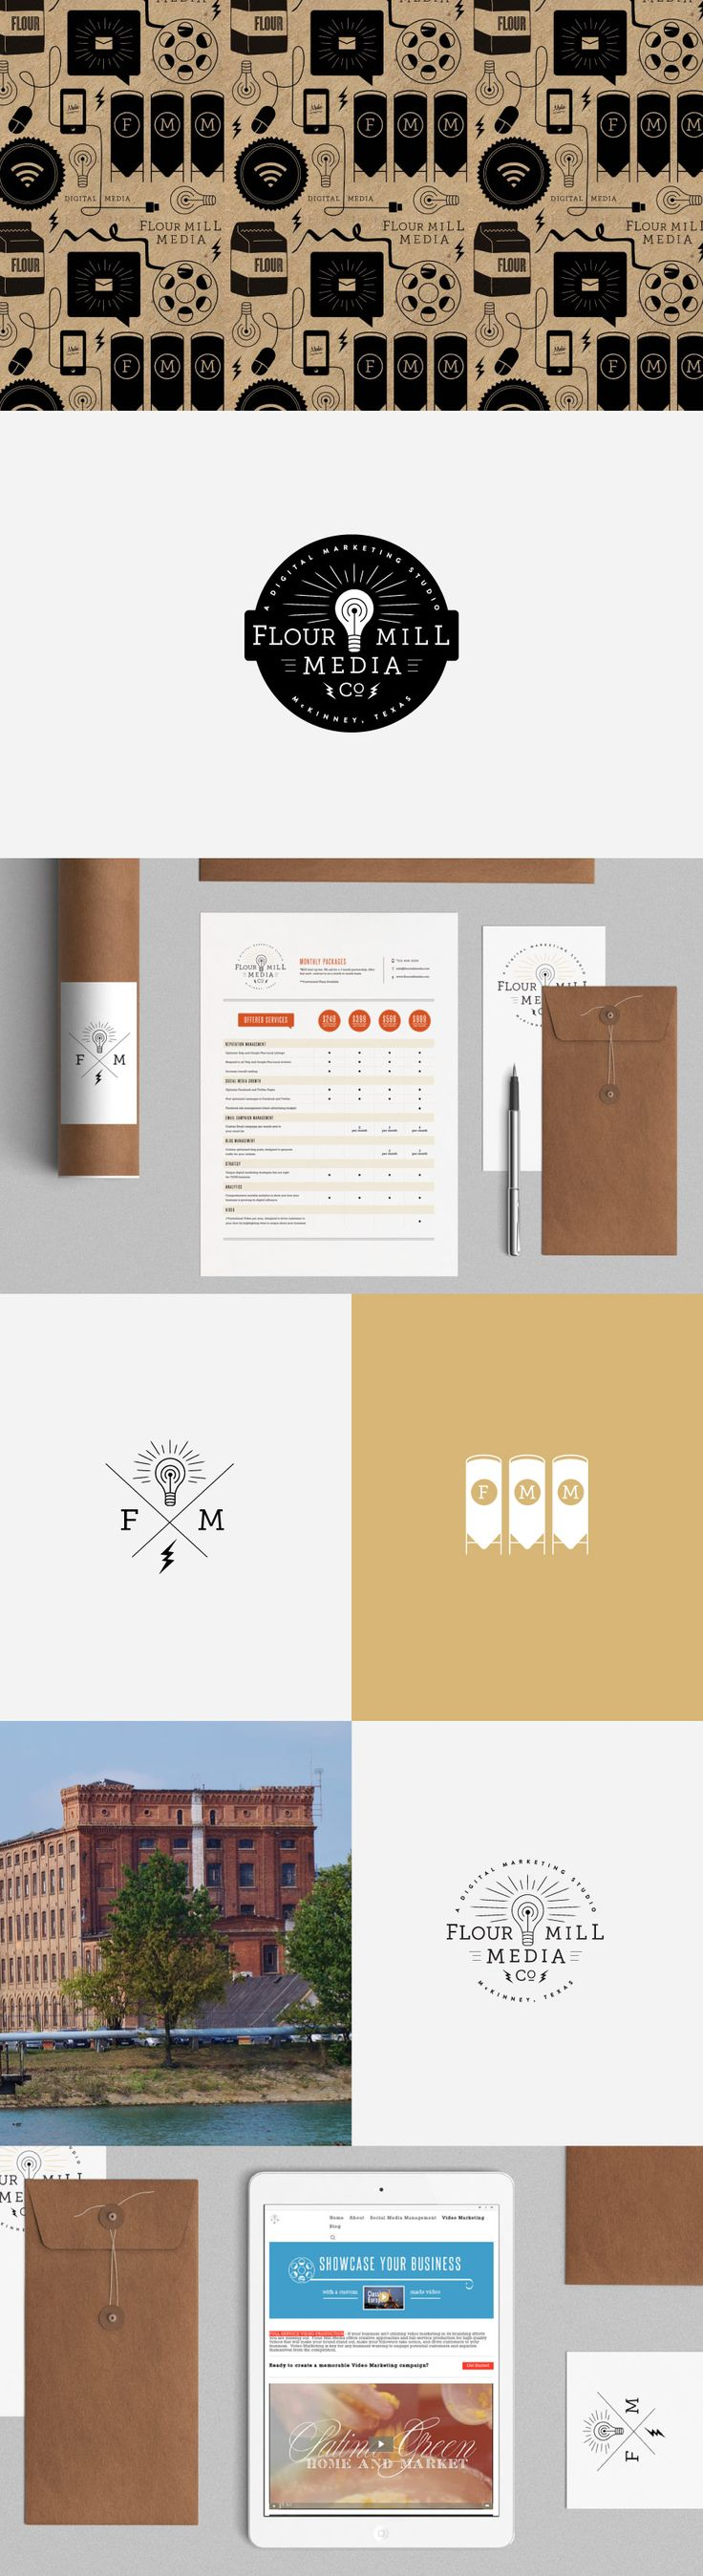 Flour Mill Media Branding by October Ink - Indie digital media being rebranded with a classic, vintage, good ol' boys look. Logo, secondary logo, kraft or craft paper pattern, web banners for slideshows, and illustrated graphics and design elements.